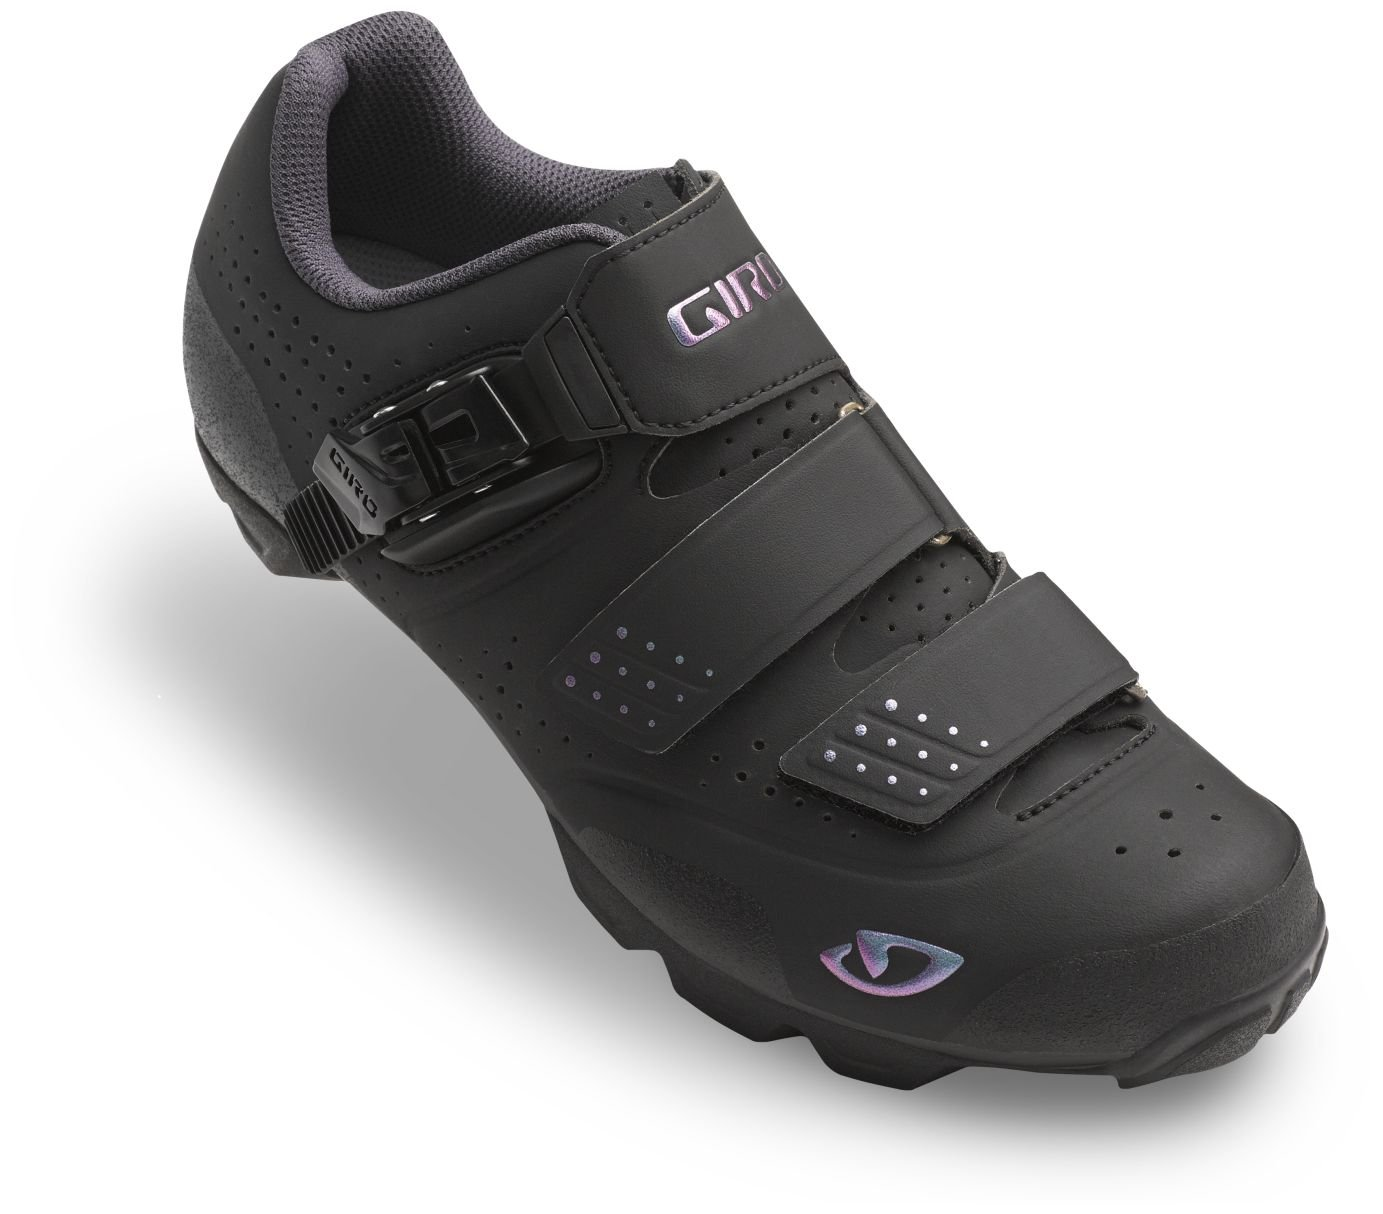 Giro Manta R Cycling Shoe - Women's Black, 42.0 by Giro